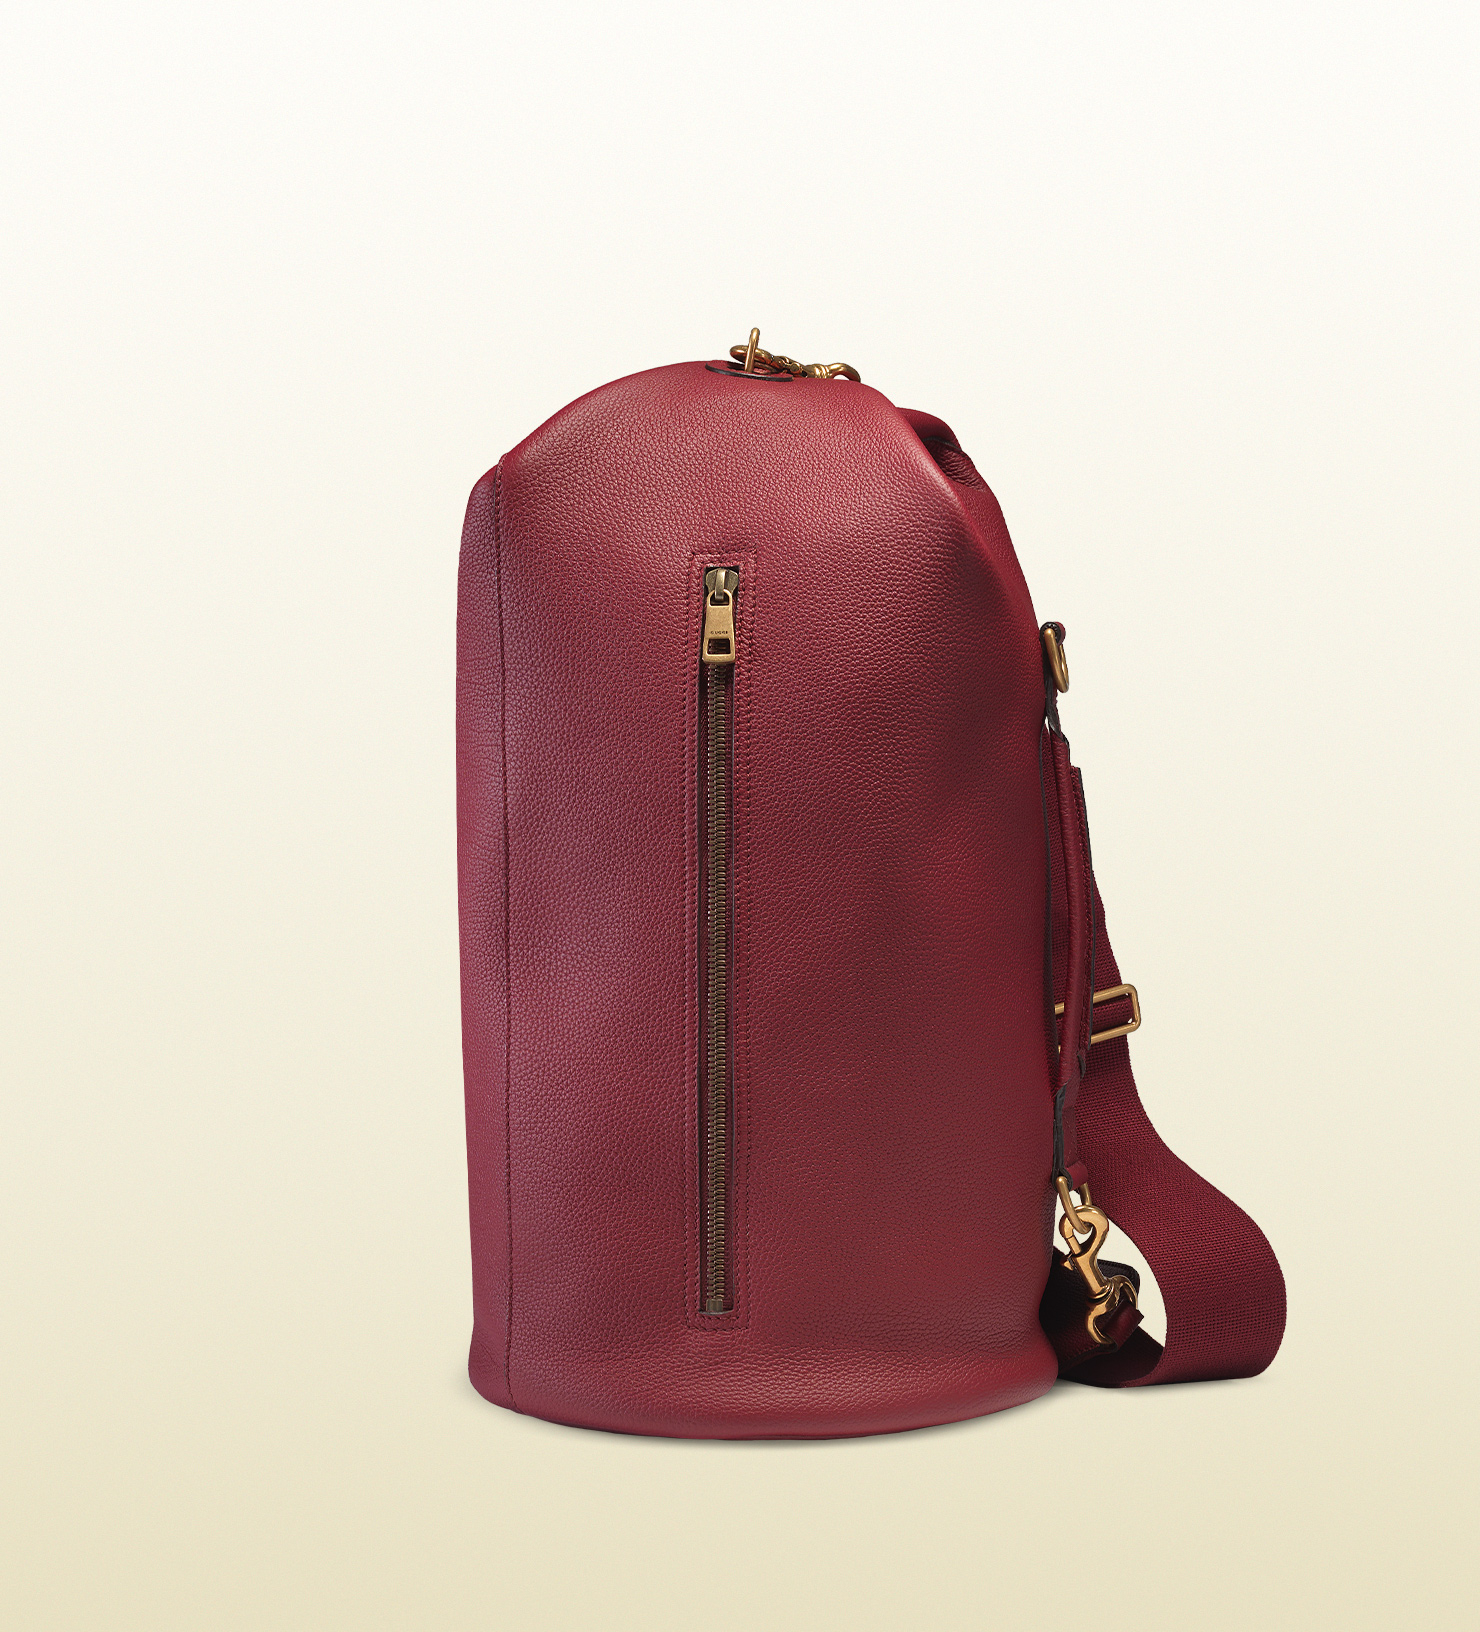 82efd96ebcde Lyst - Gucci Leather Backpack in Red for Men